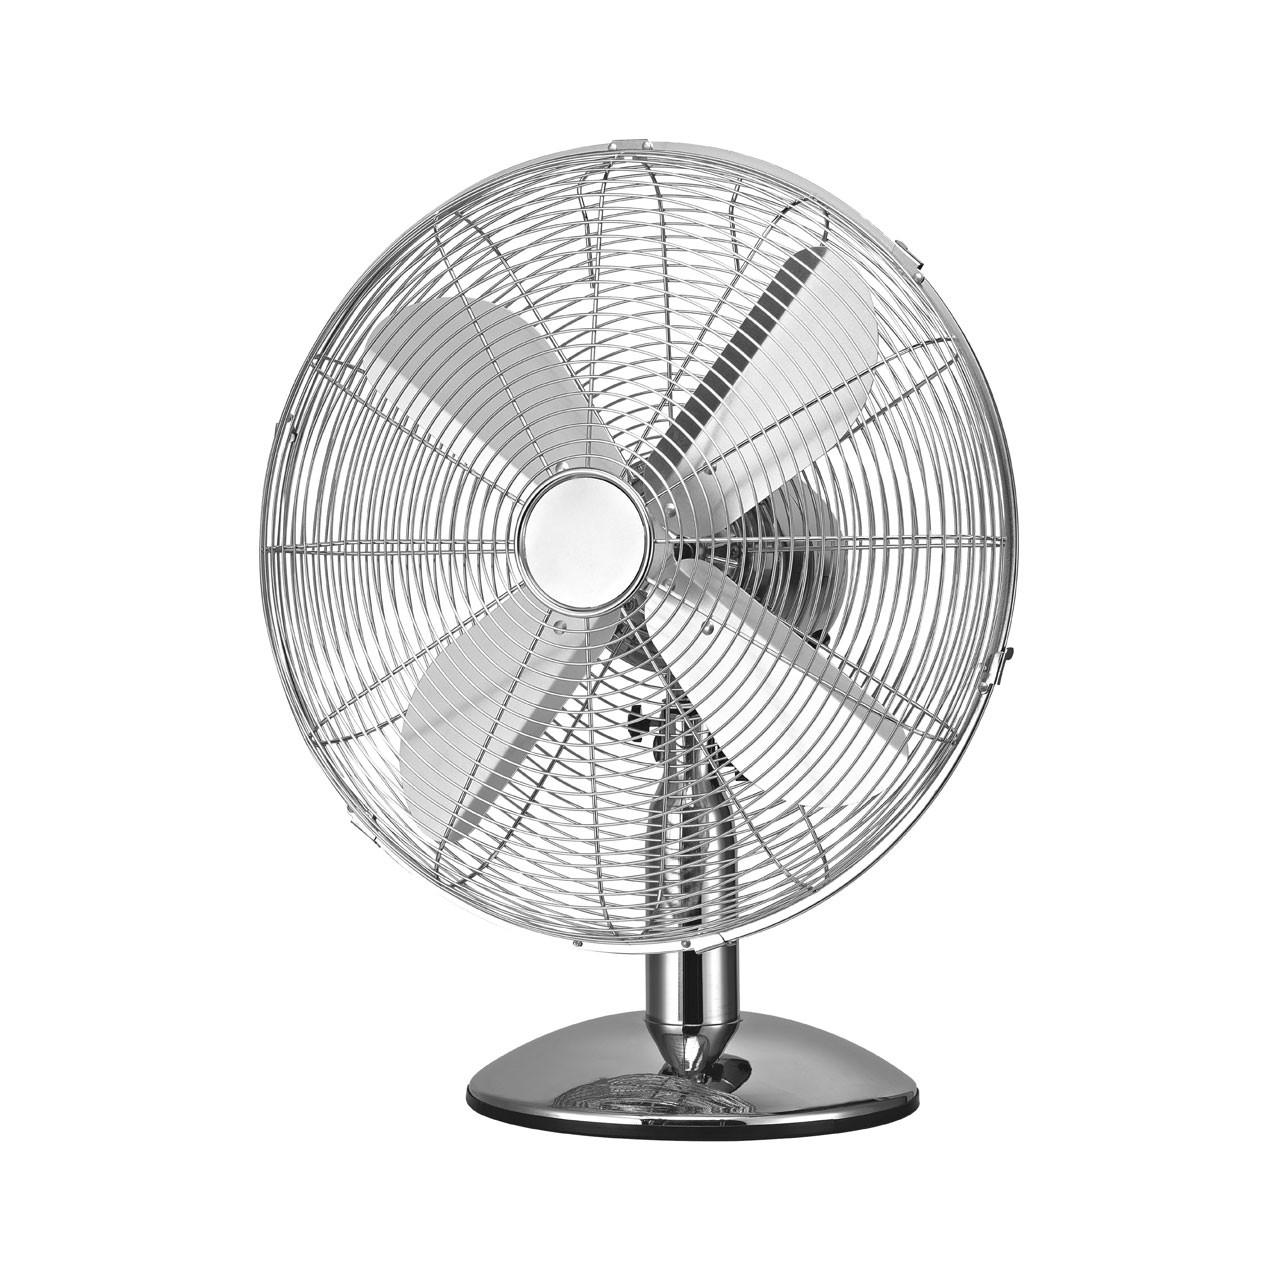 Desk Fan with 3 Speeds/ Oscillation, Chrome/ Silver